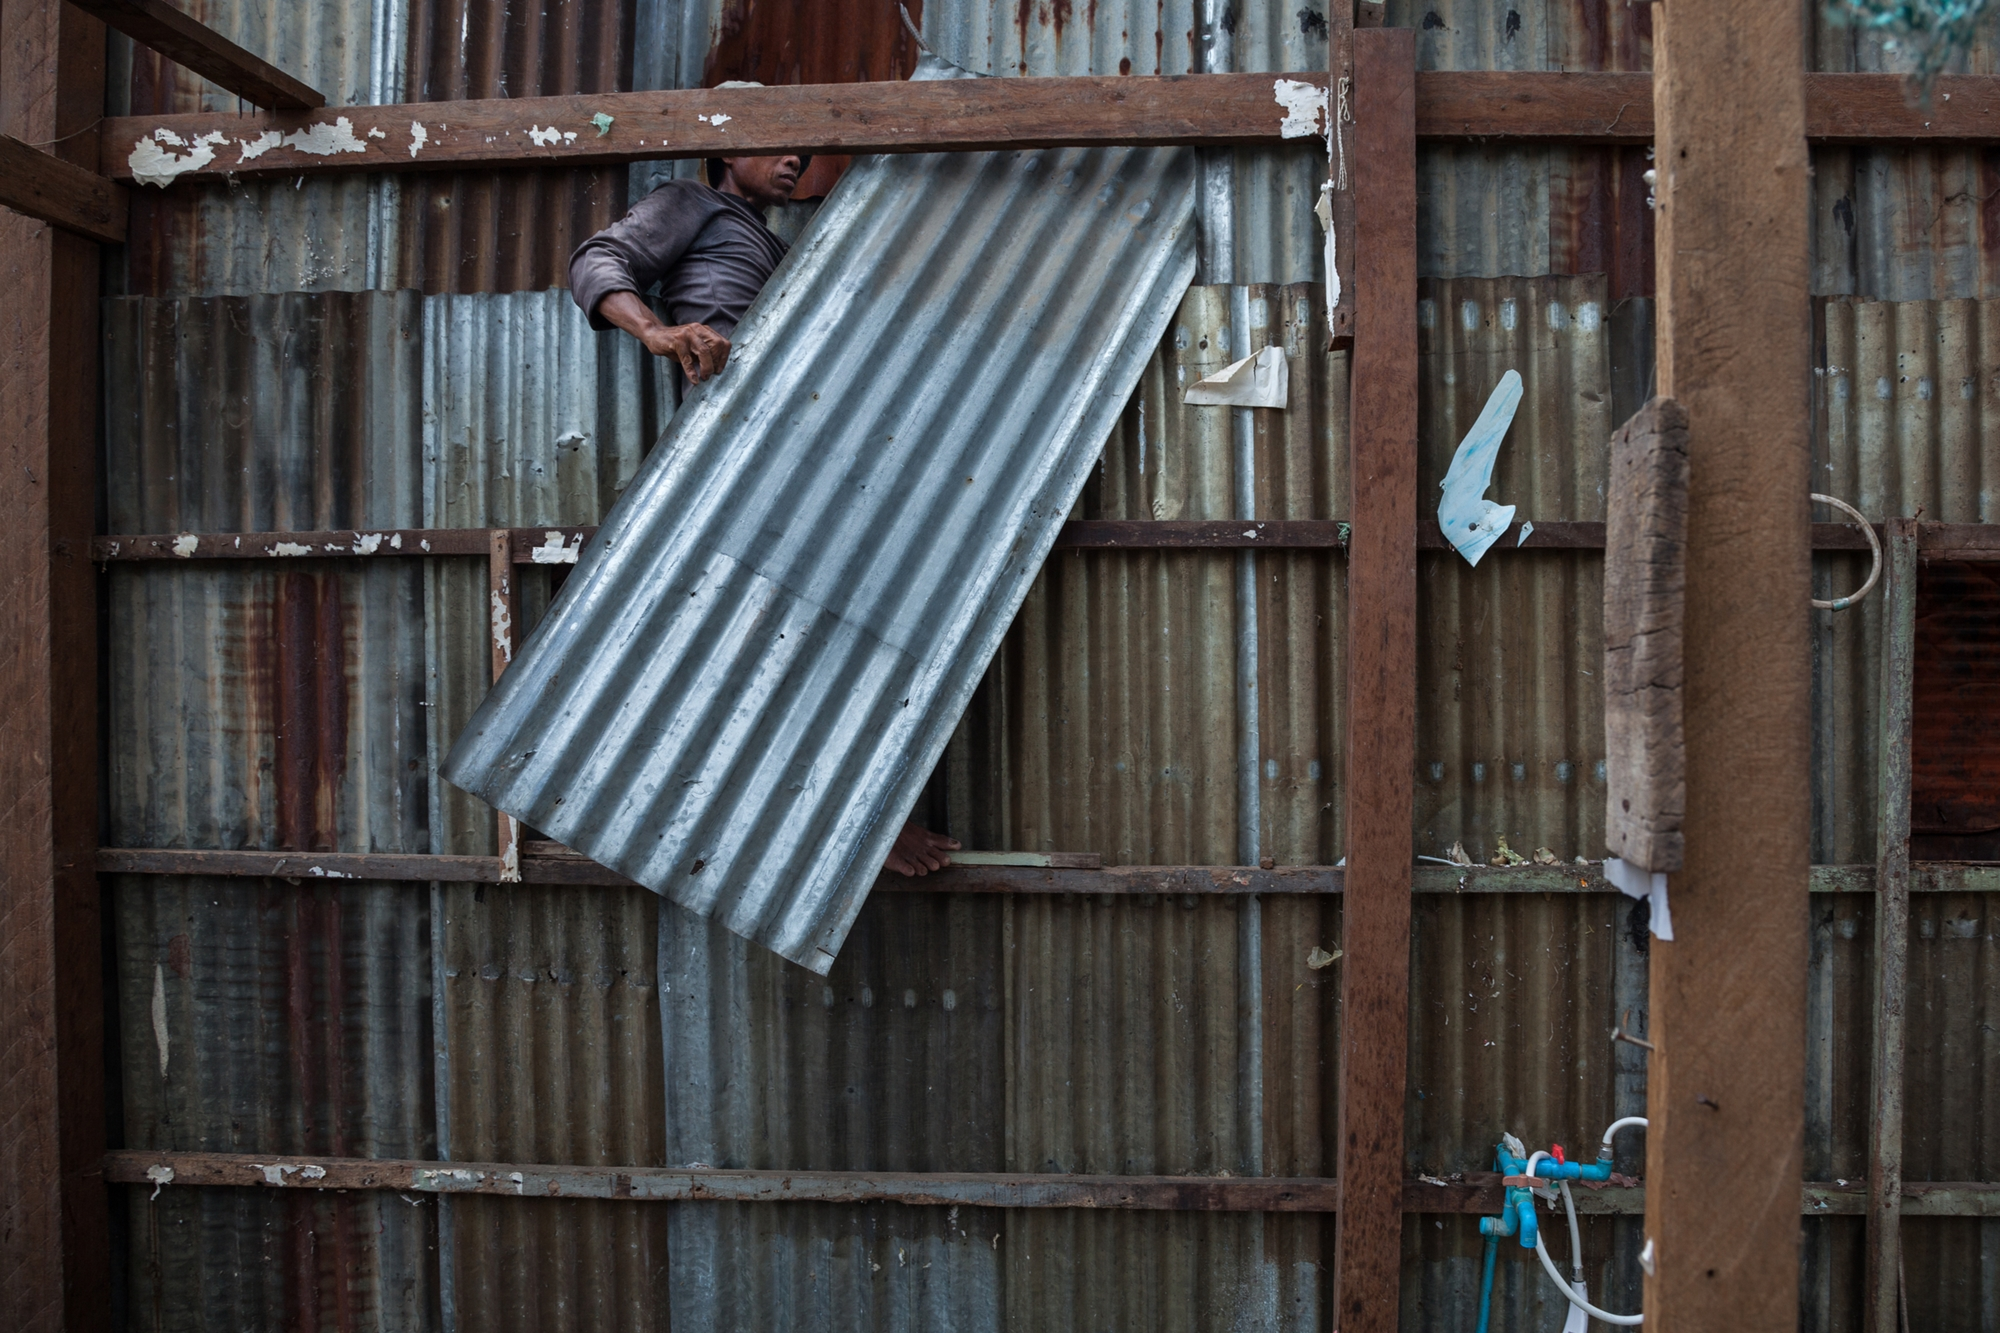 transitioning photo essay of rapid developments in 23 2010 phnom penh a worker dismantles a house on boeung kak residents had the option of accepting 8500 dollars in compensation or